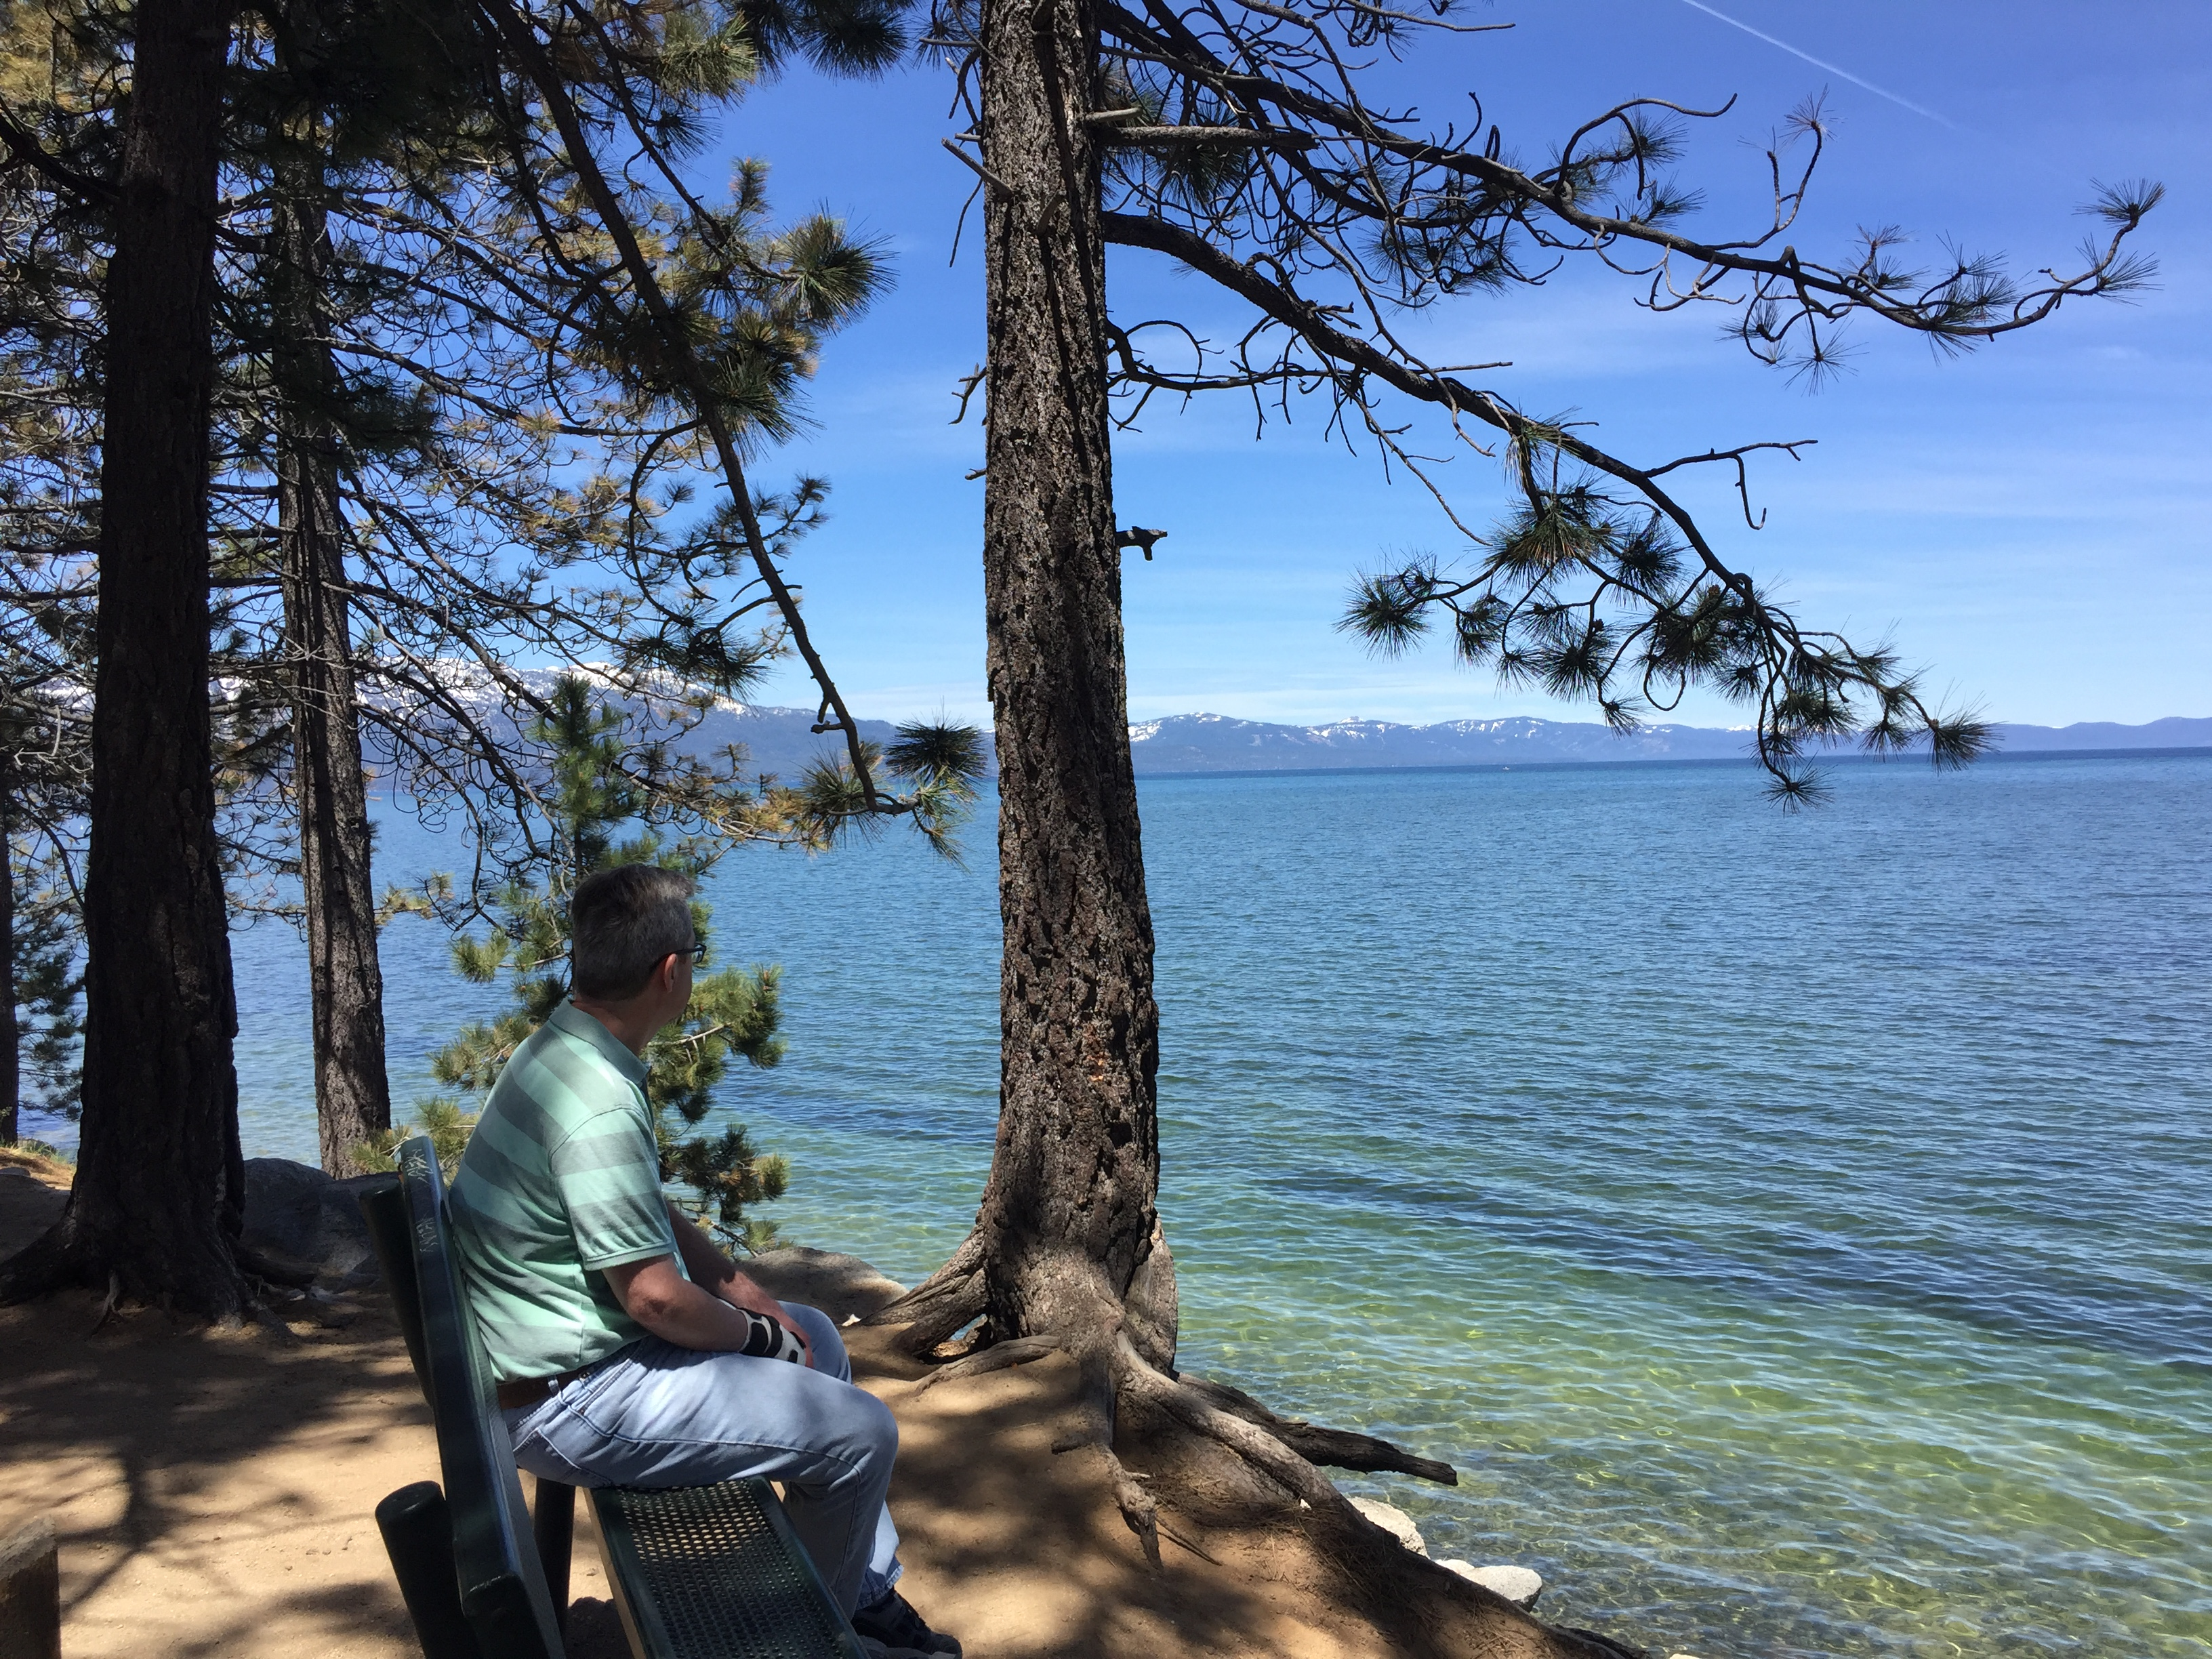 car-free lake tahoe